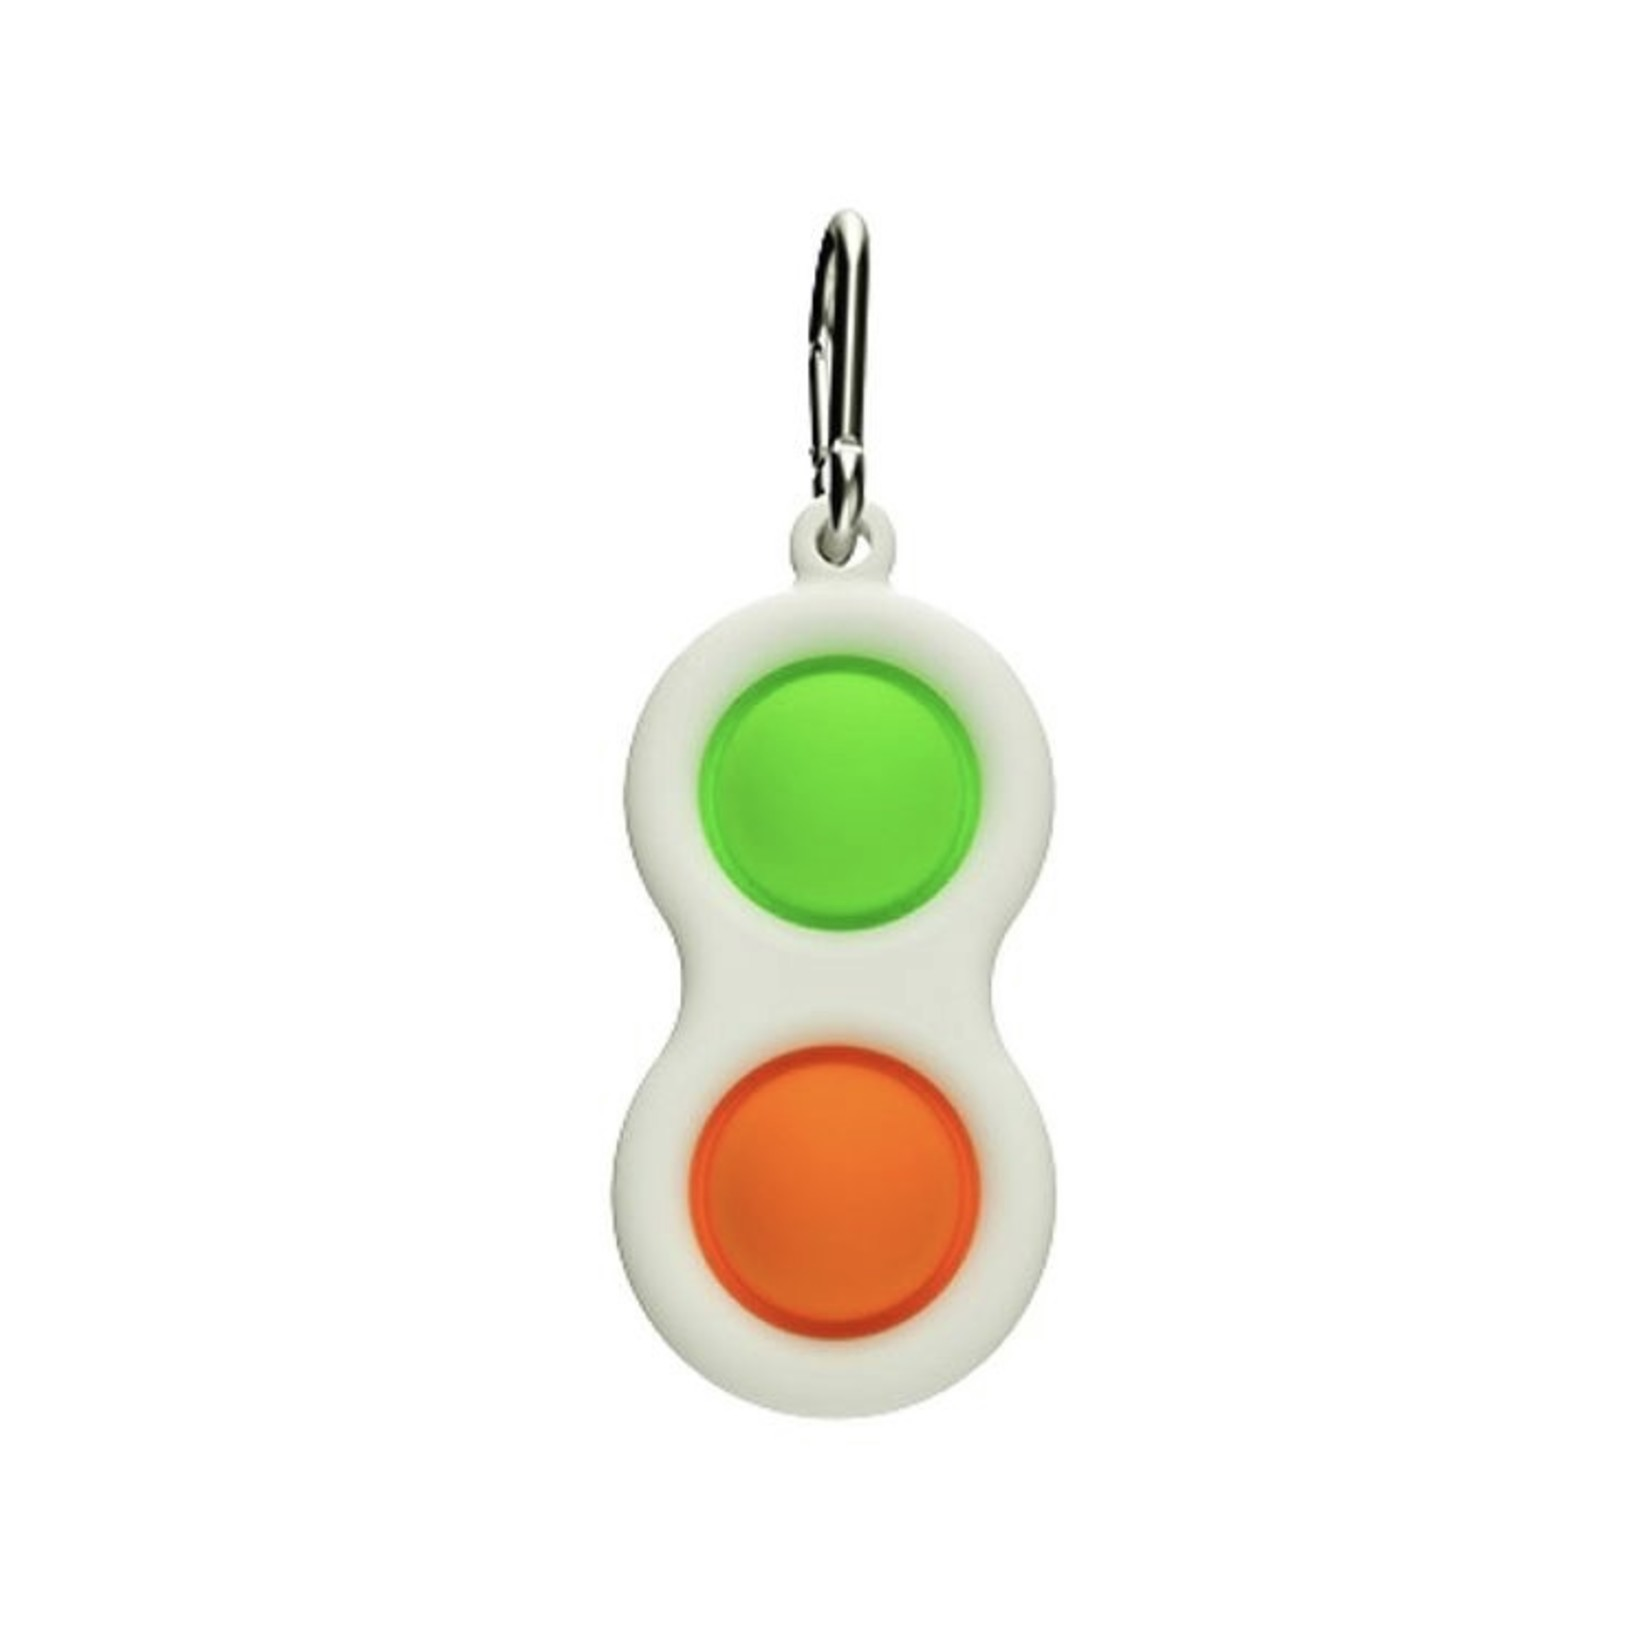 Family Products Australia Simple Dimple Orange/Green